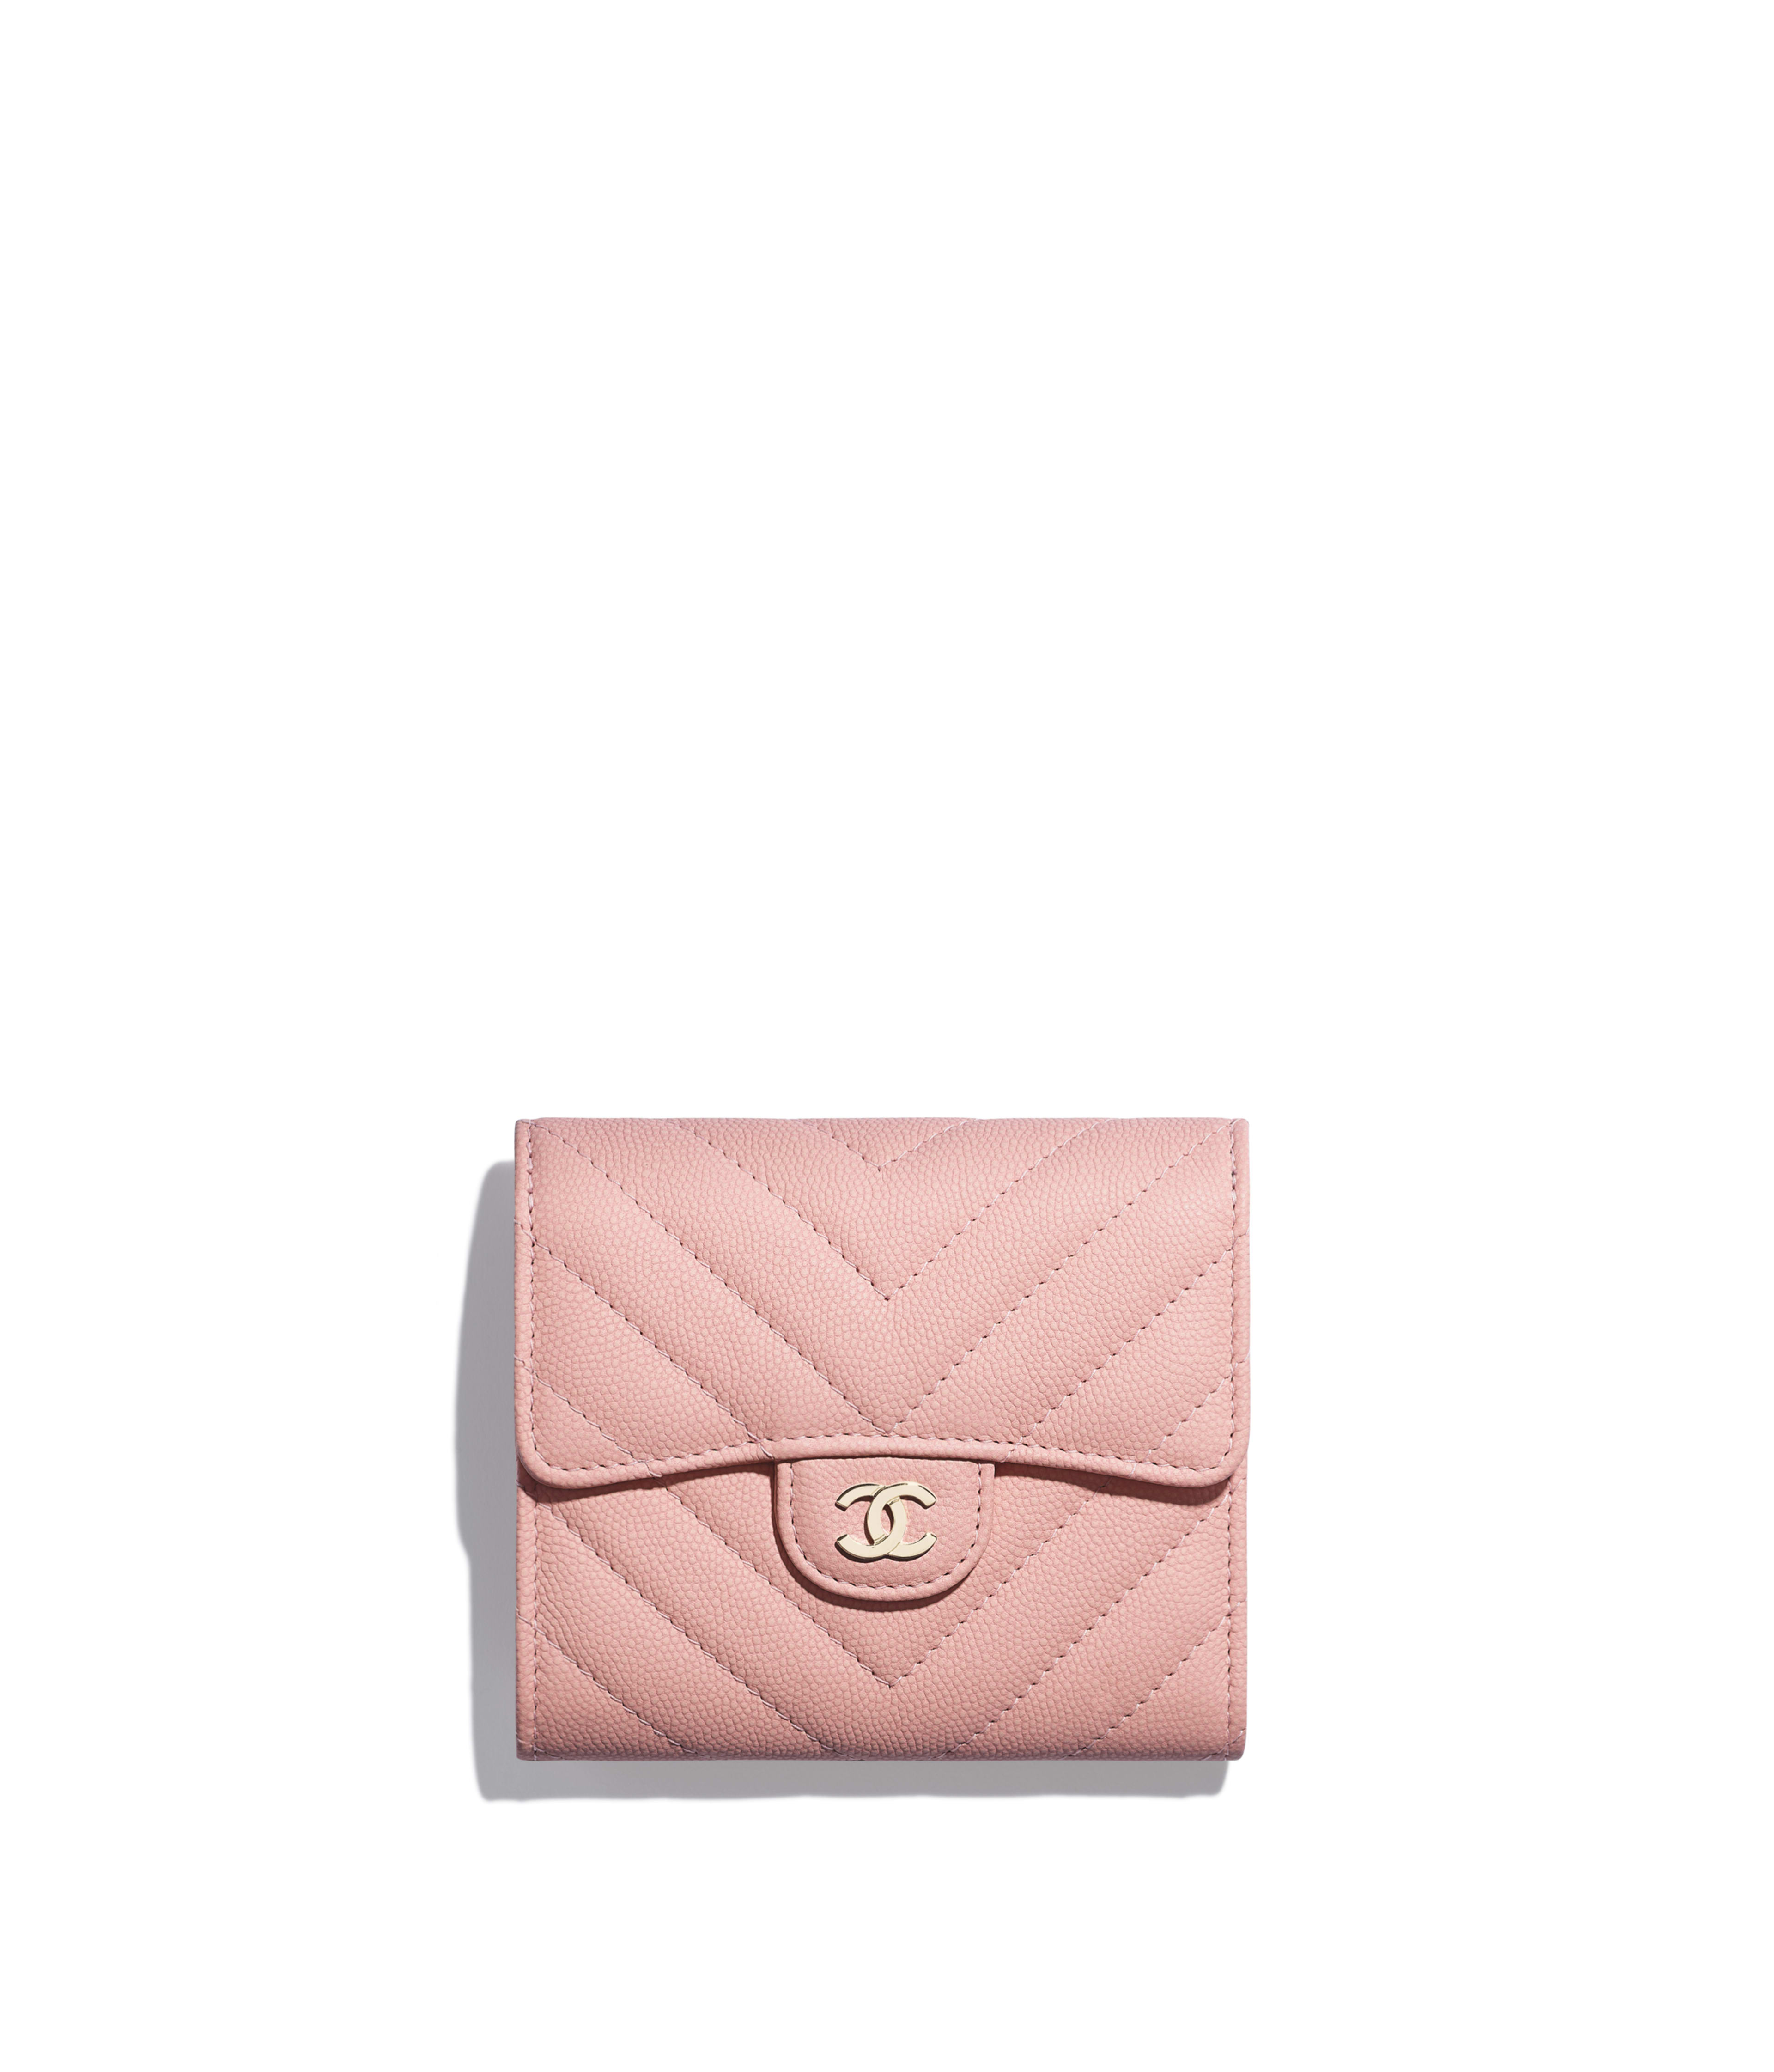 8ce76dfda947c1 Classic Small Flap Wallet Grained Calfskin & Gold-Tone Metal, Pink Ref.  A82288B00313N0897